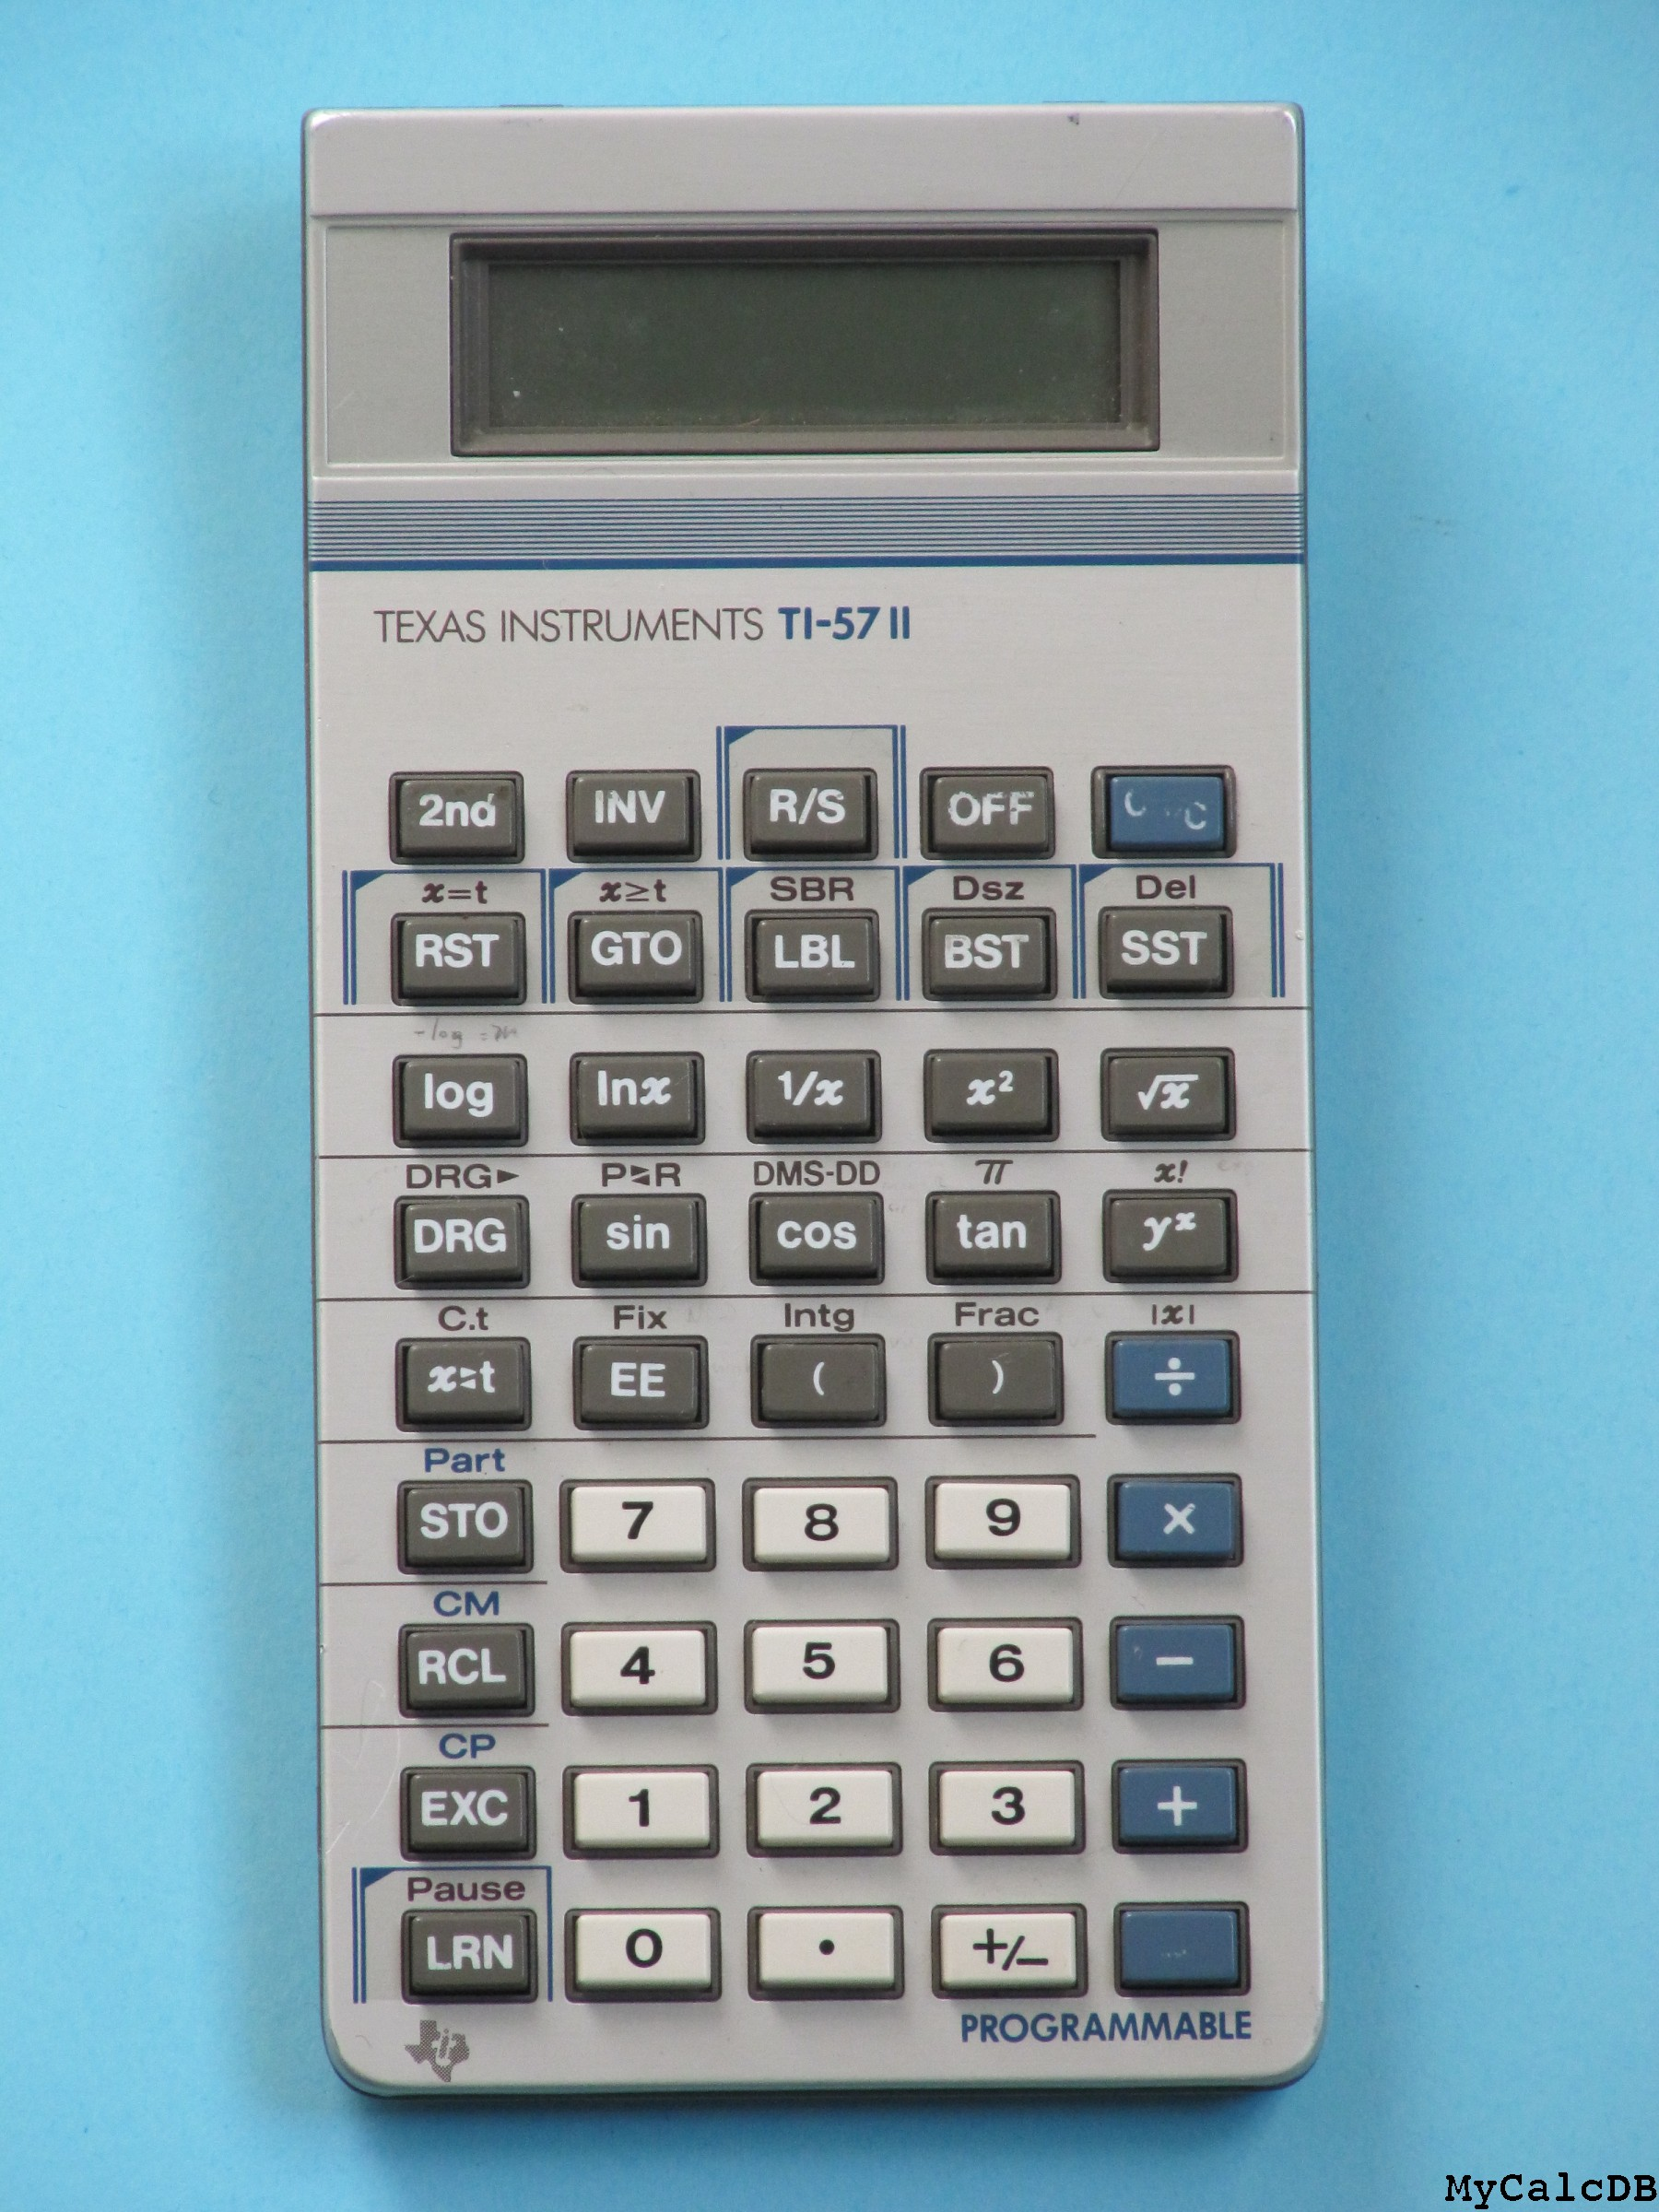 Texas Instruments TI-57 II